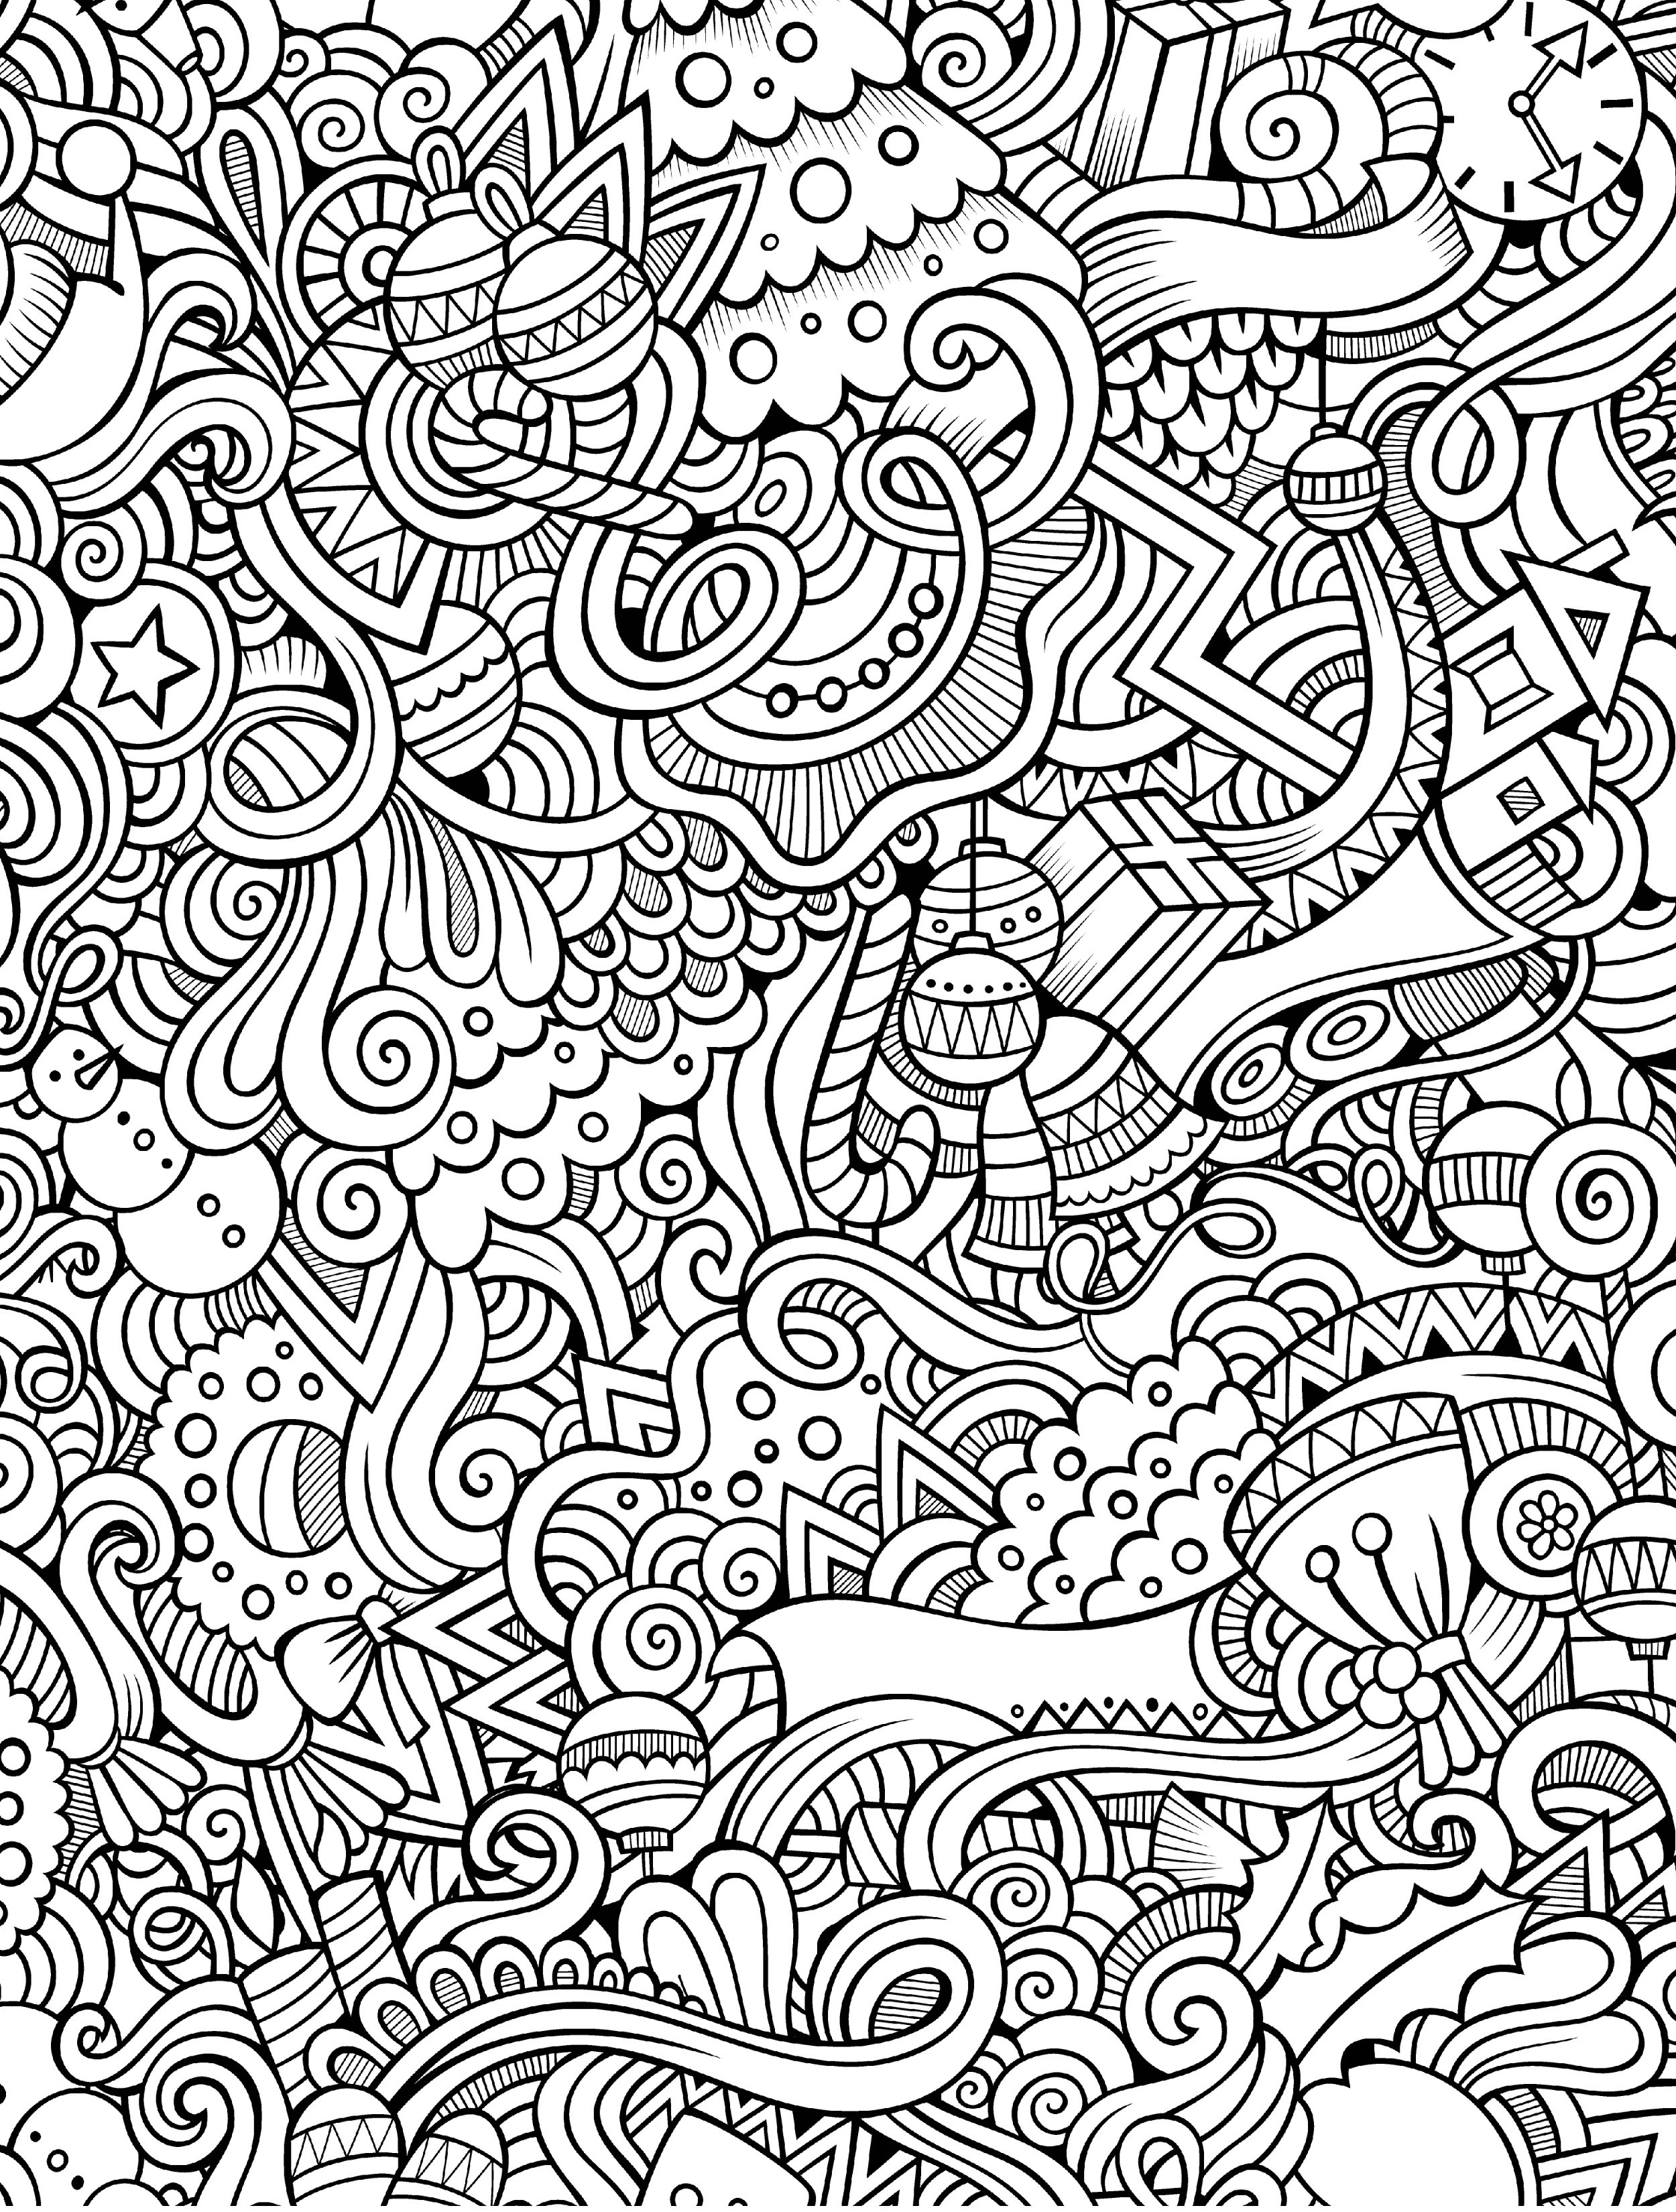 Best ideas about Adult Christmas Coloring Books . Save or Pin 10 Free Printable Holiday Adult Coloring Pages Now.